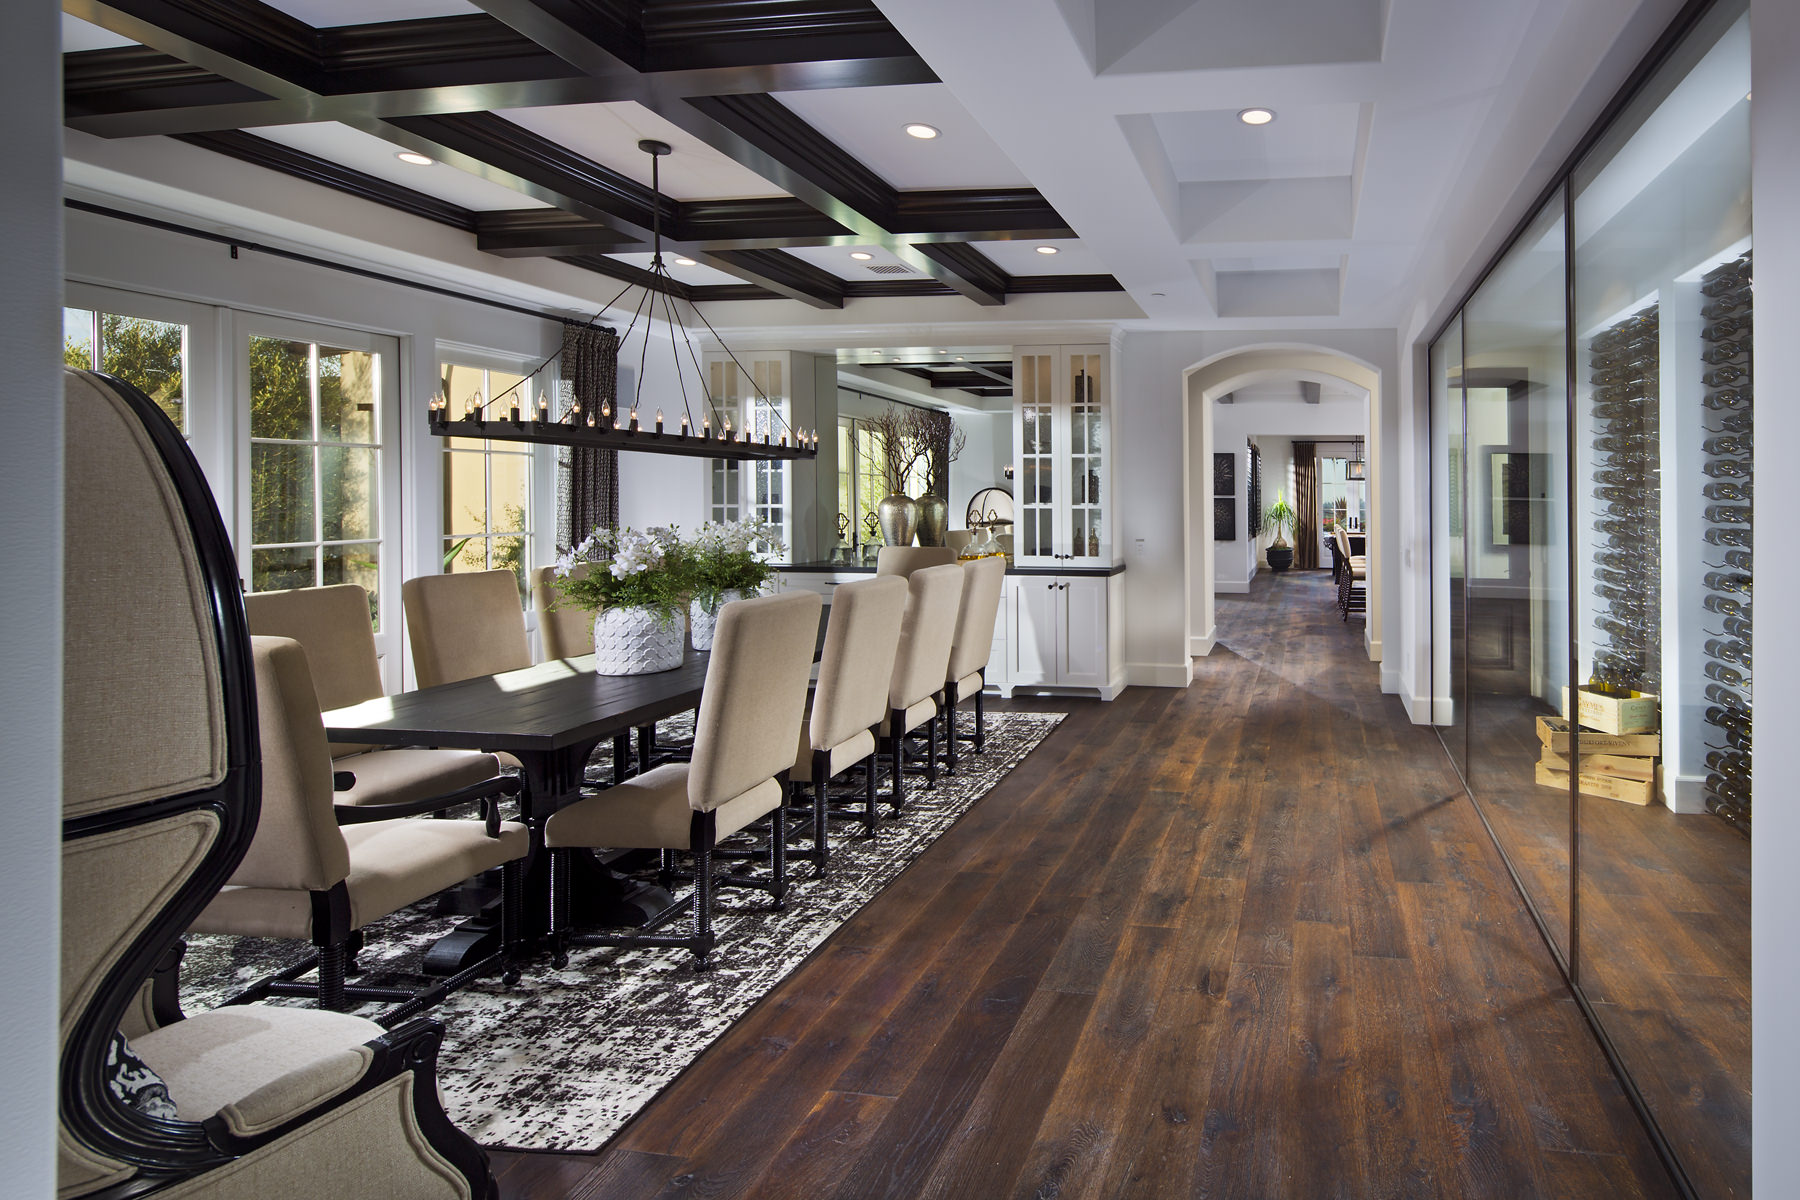 1532-20_Dining_Room_Lot10_TheArtisan_WilliamLyon_EricFiggePhotos.jpg